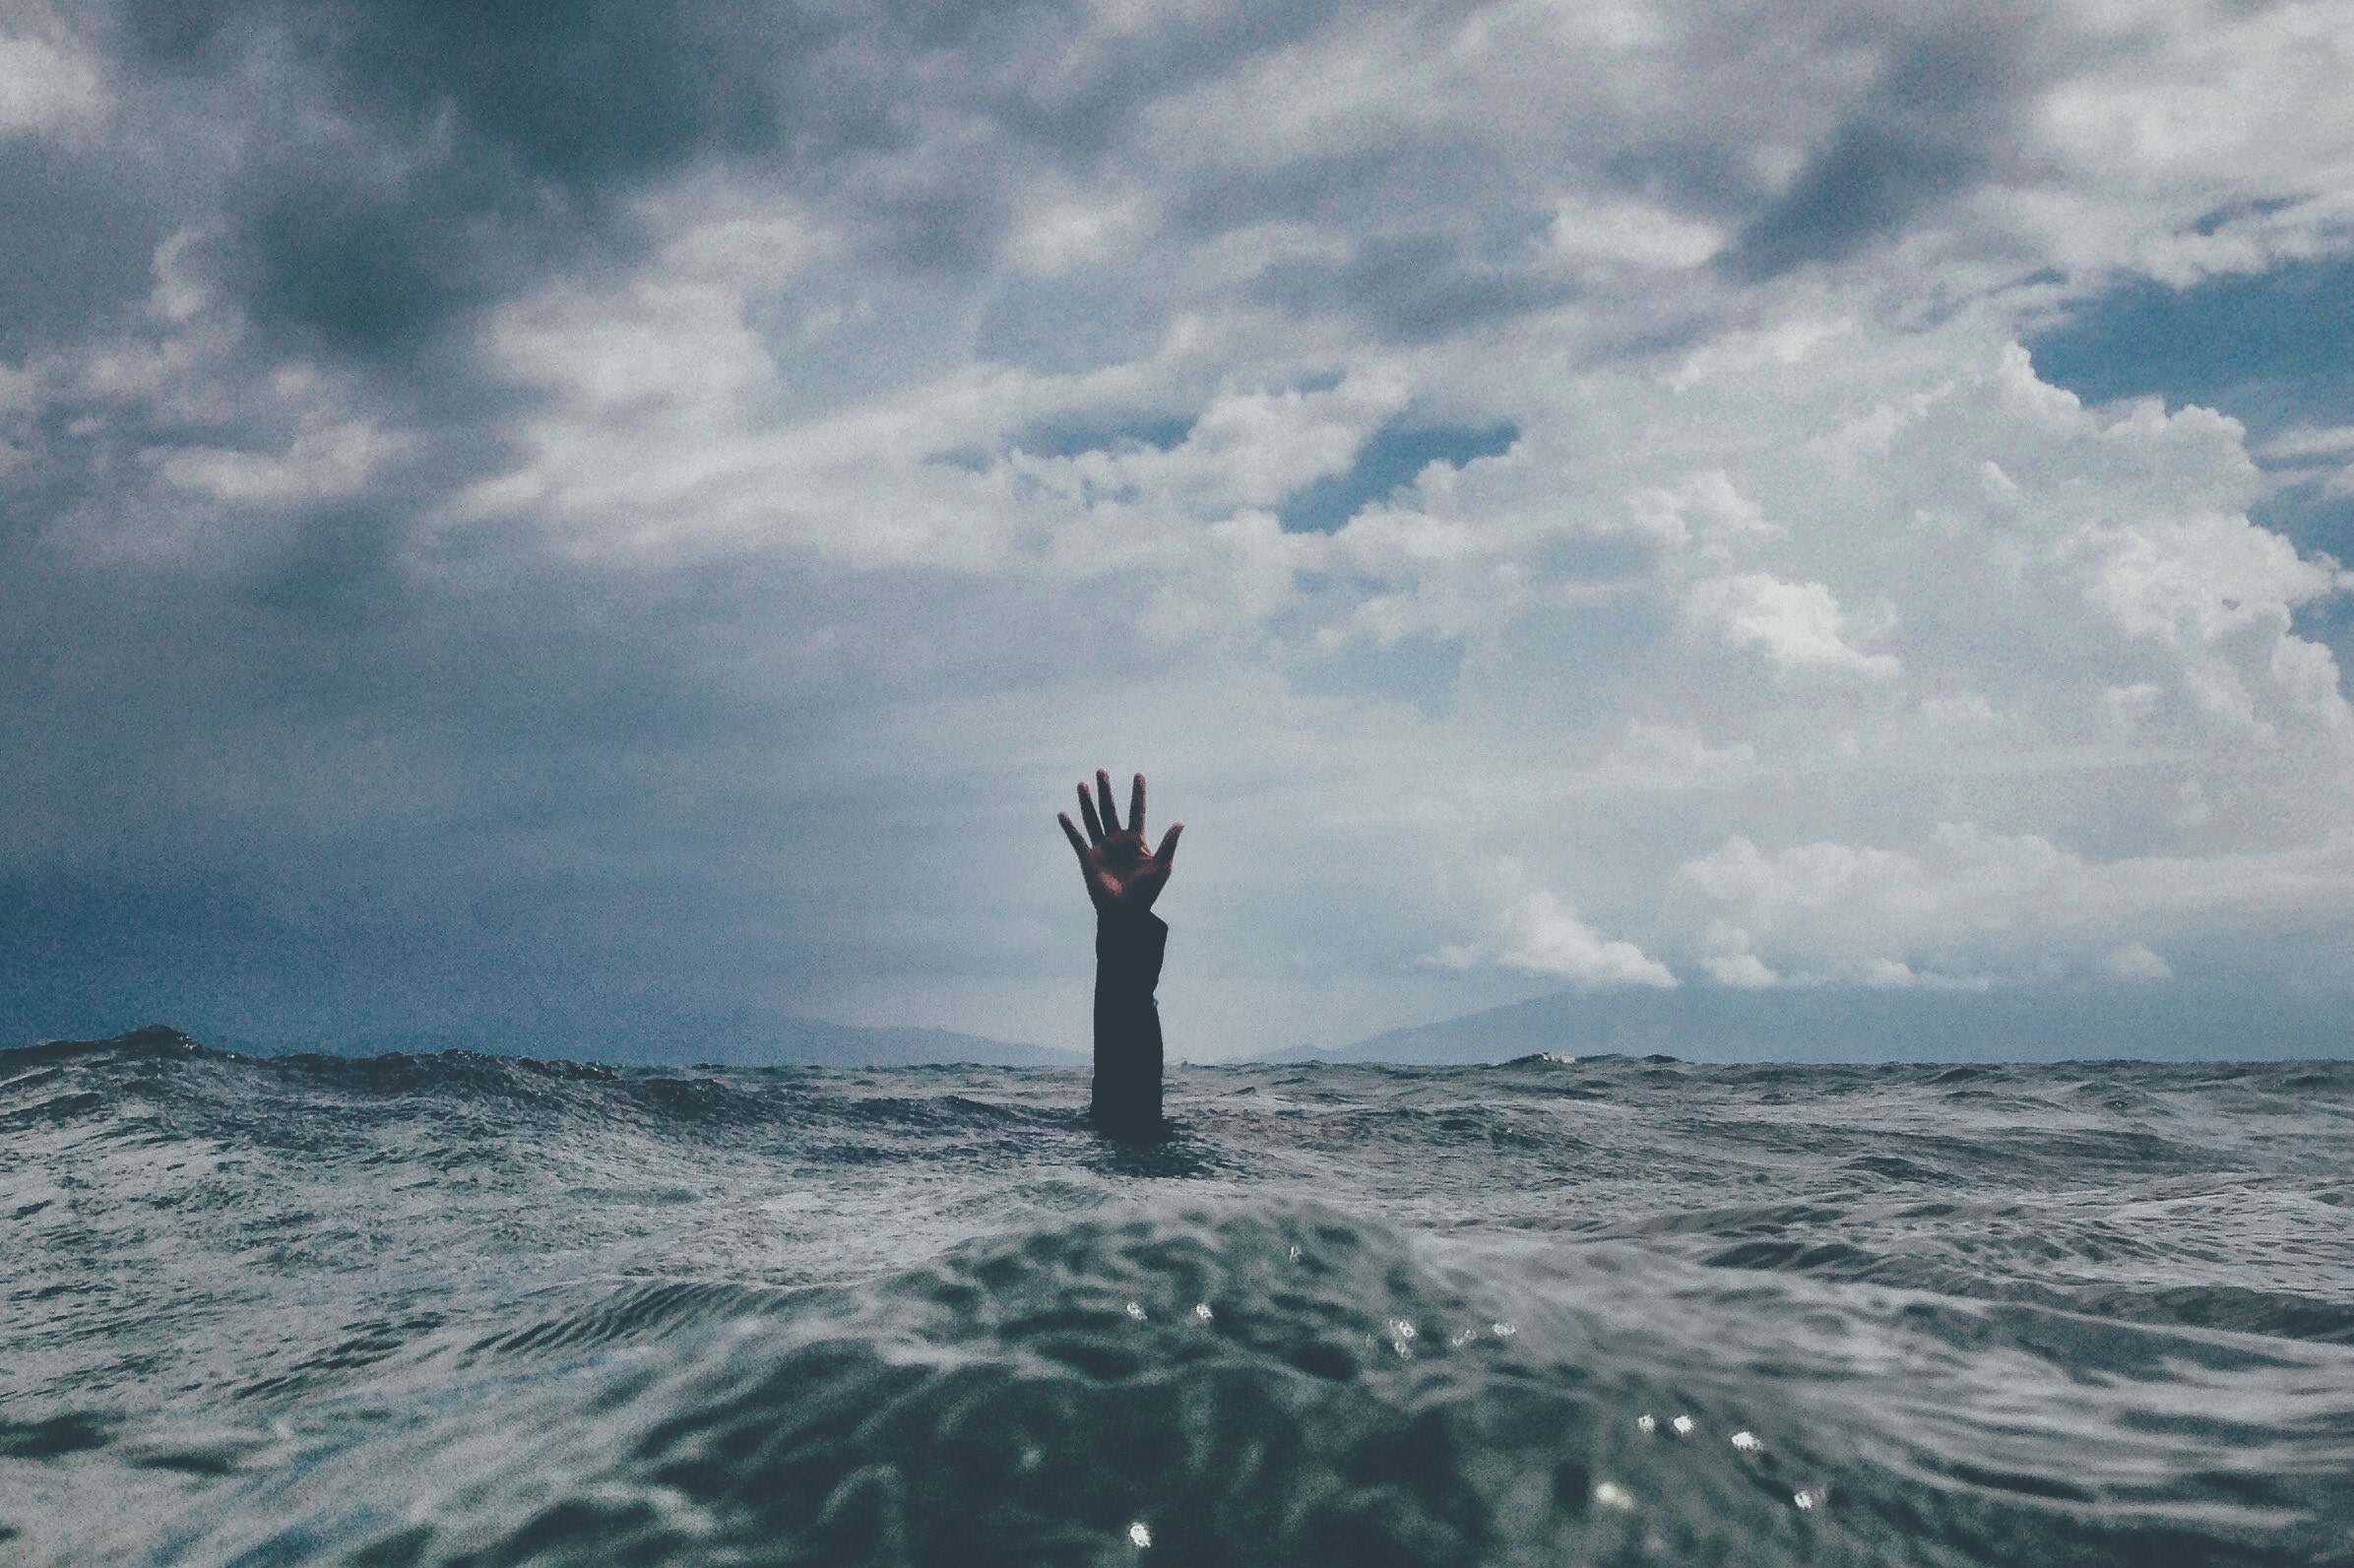 an arm reaches out of a tempestous sea, with dark clouds threatening overhead - what happens when we feel stressed